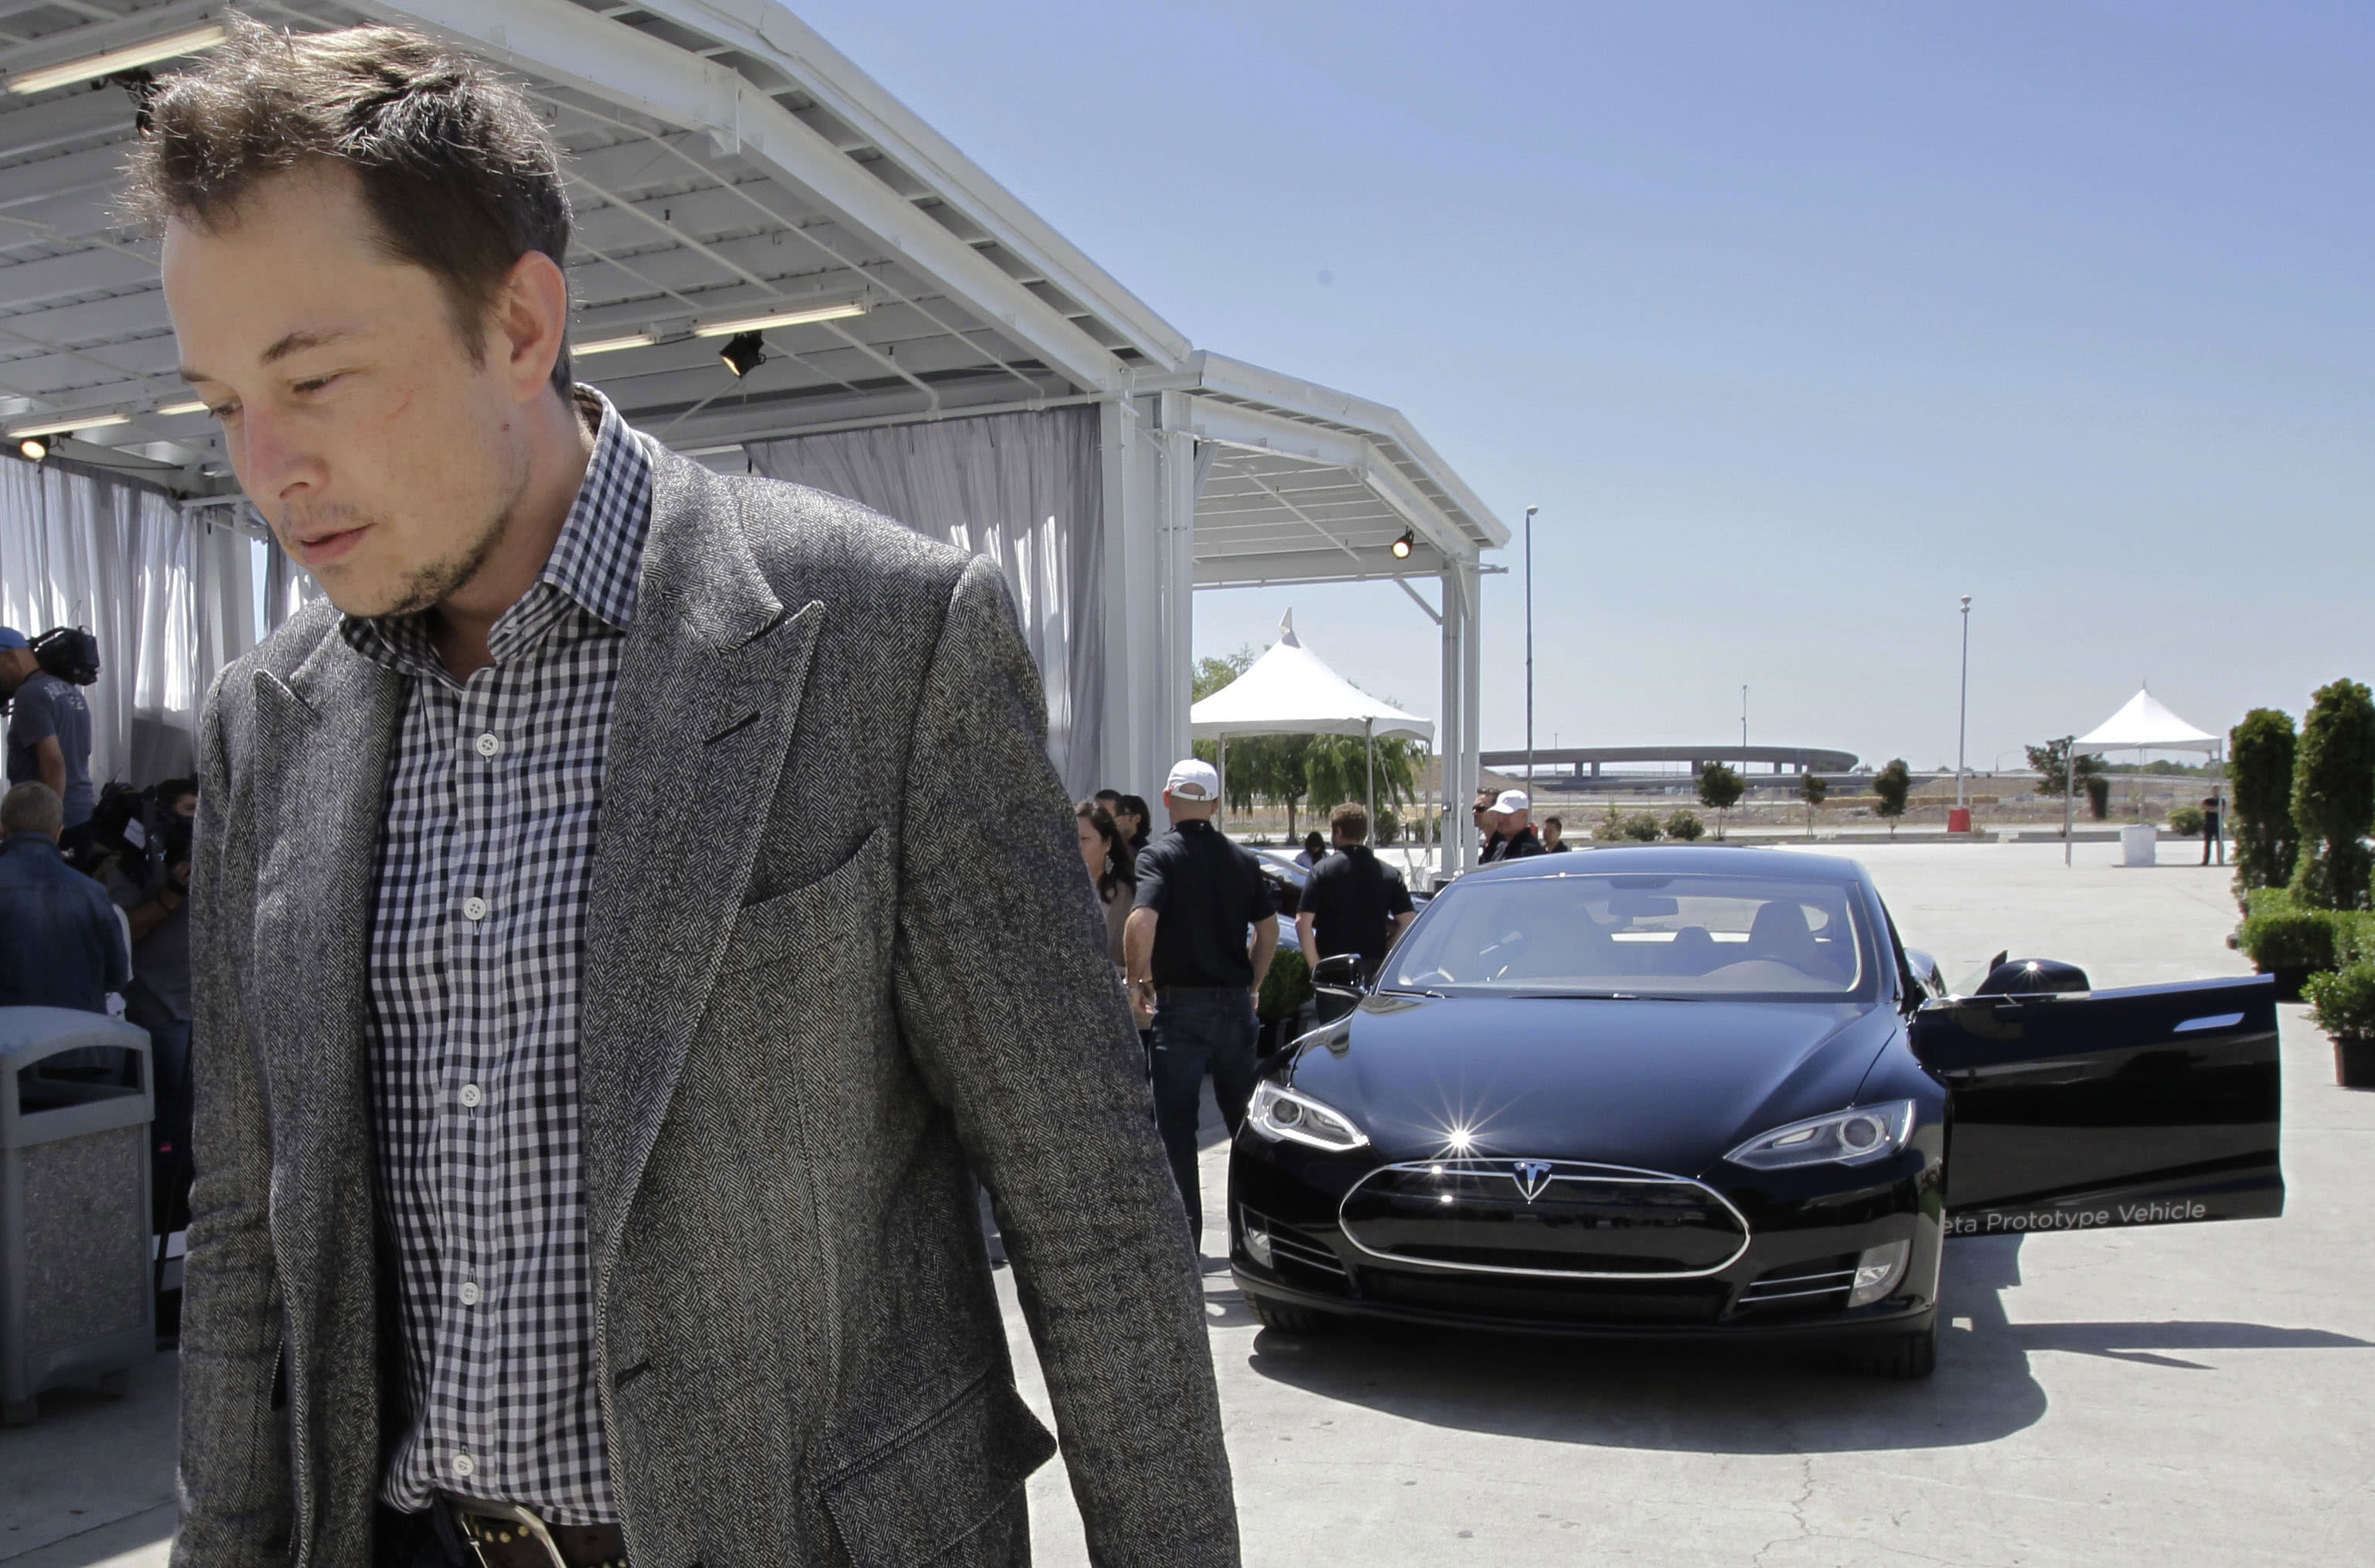 Wall Street has finally learned an important lesson about Tesla